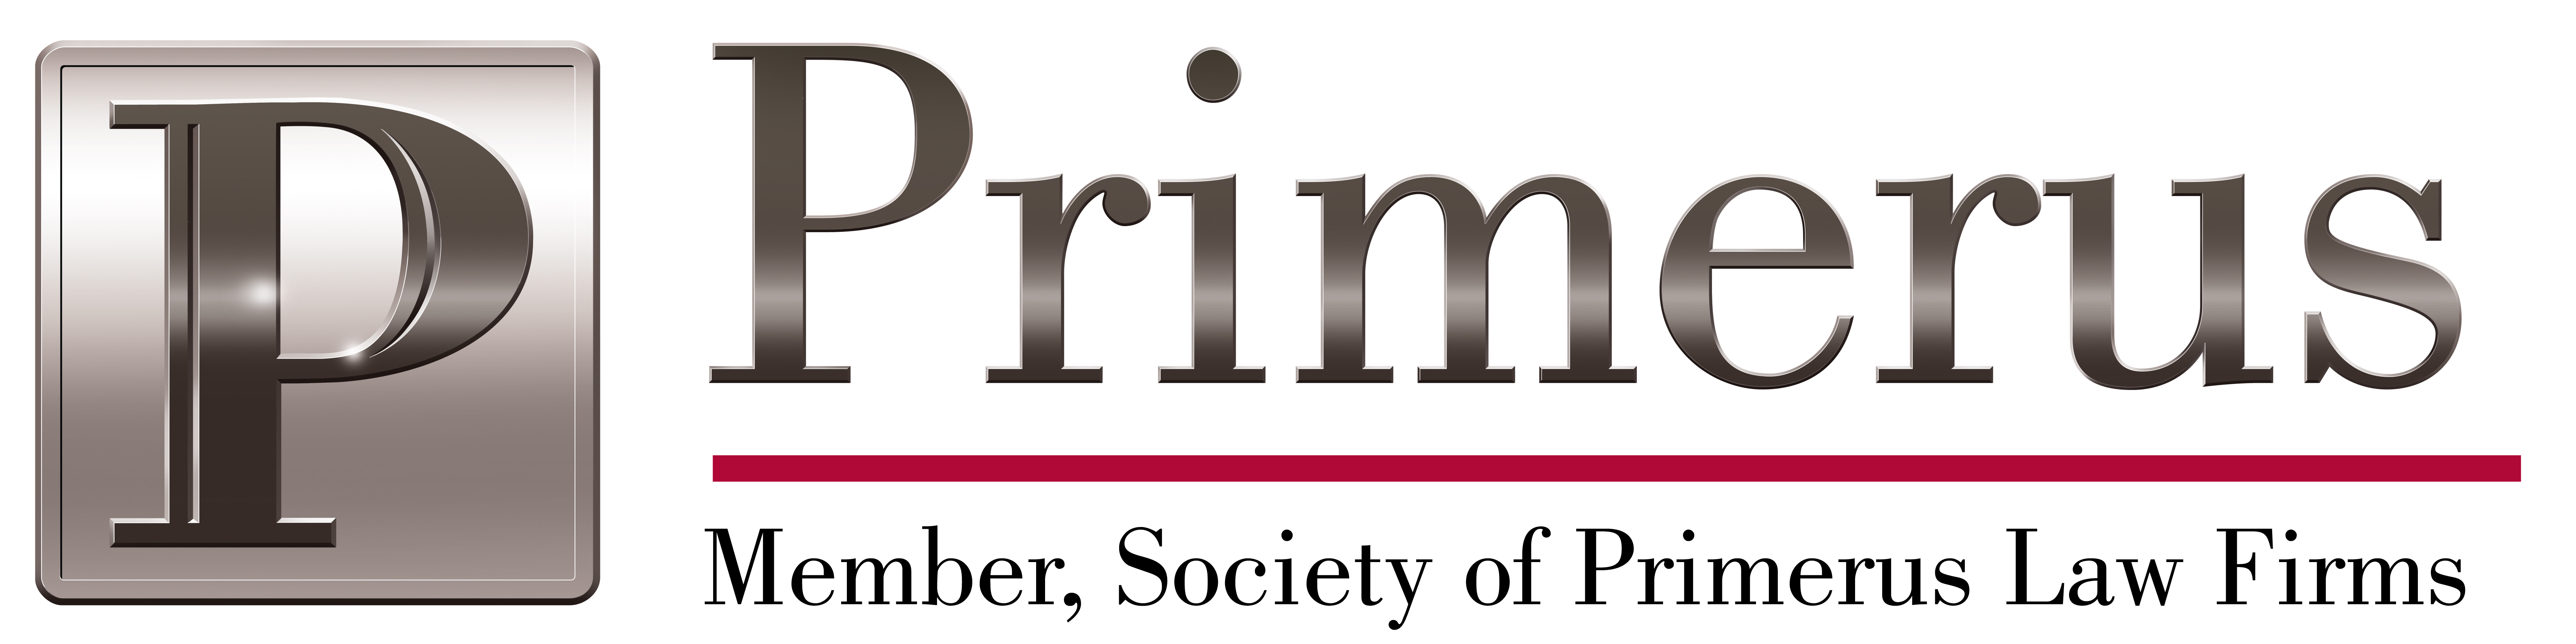 The International Society of Primerus Law Firms Welcomes